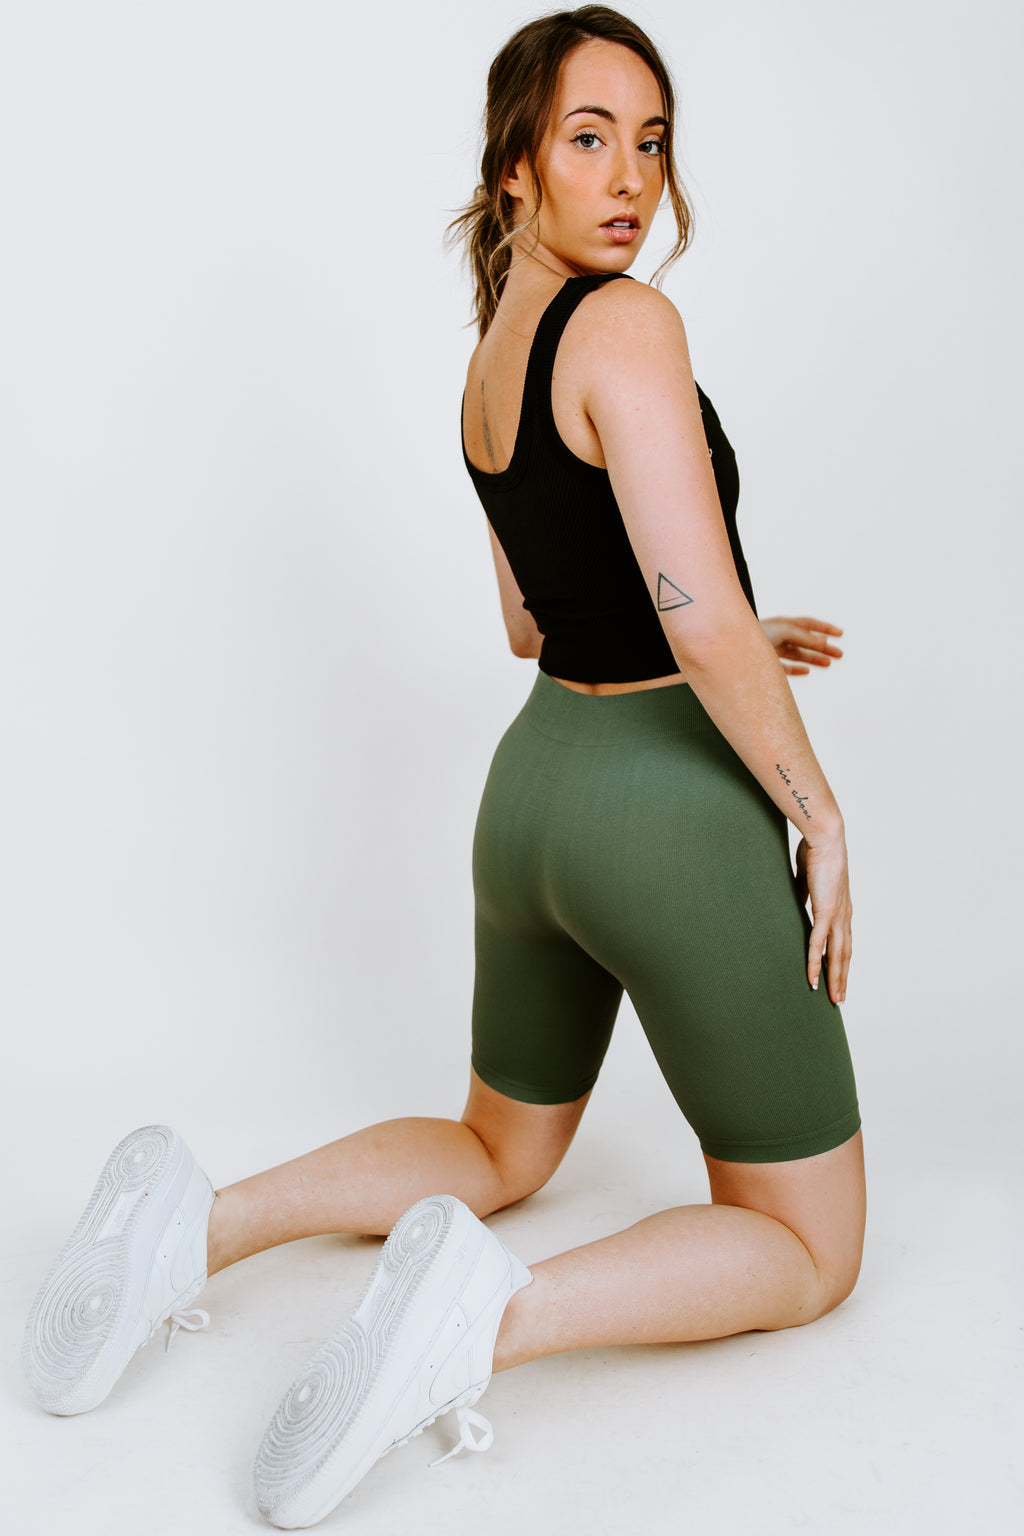 Free People Seamless Rib Bike Short - Army